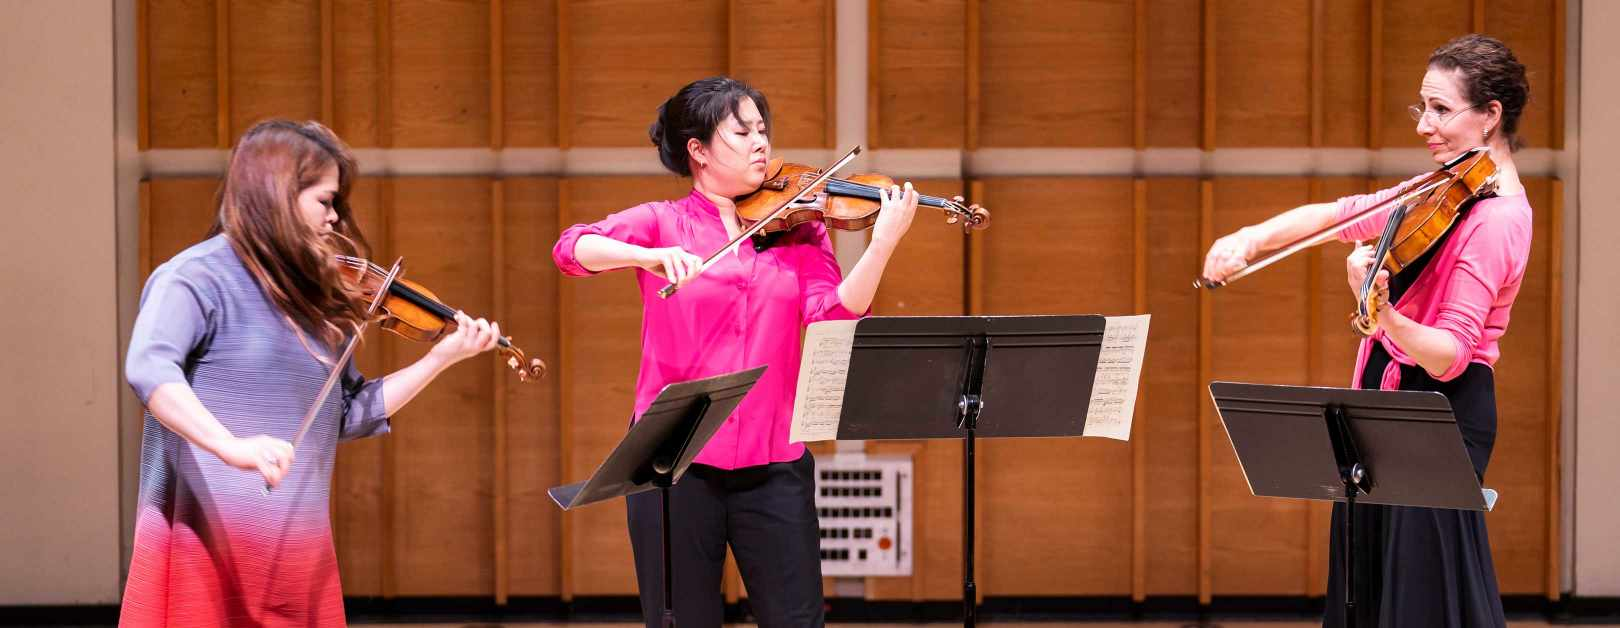 Philharmonic Ensembles at Merkin Hall